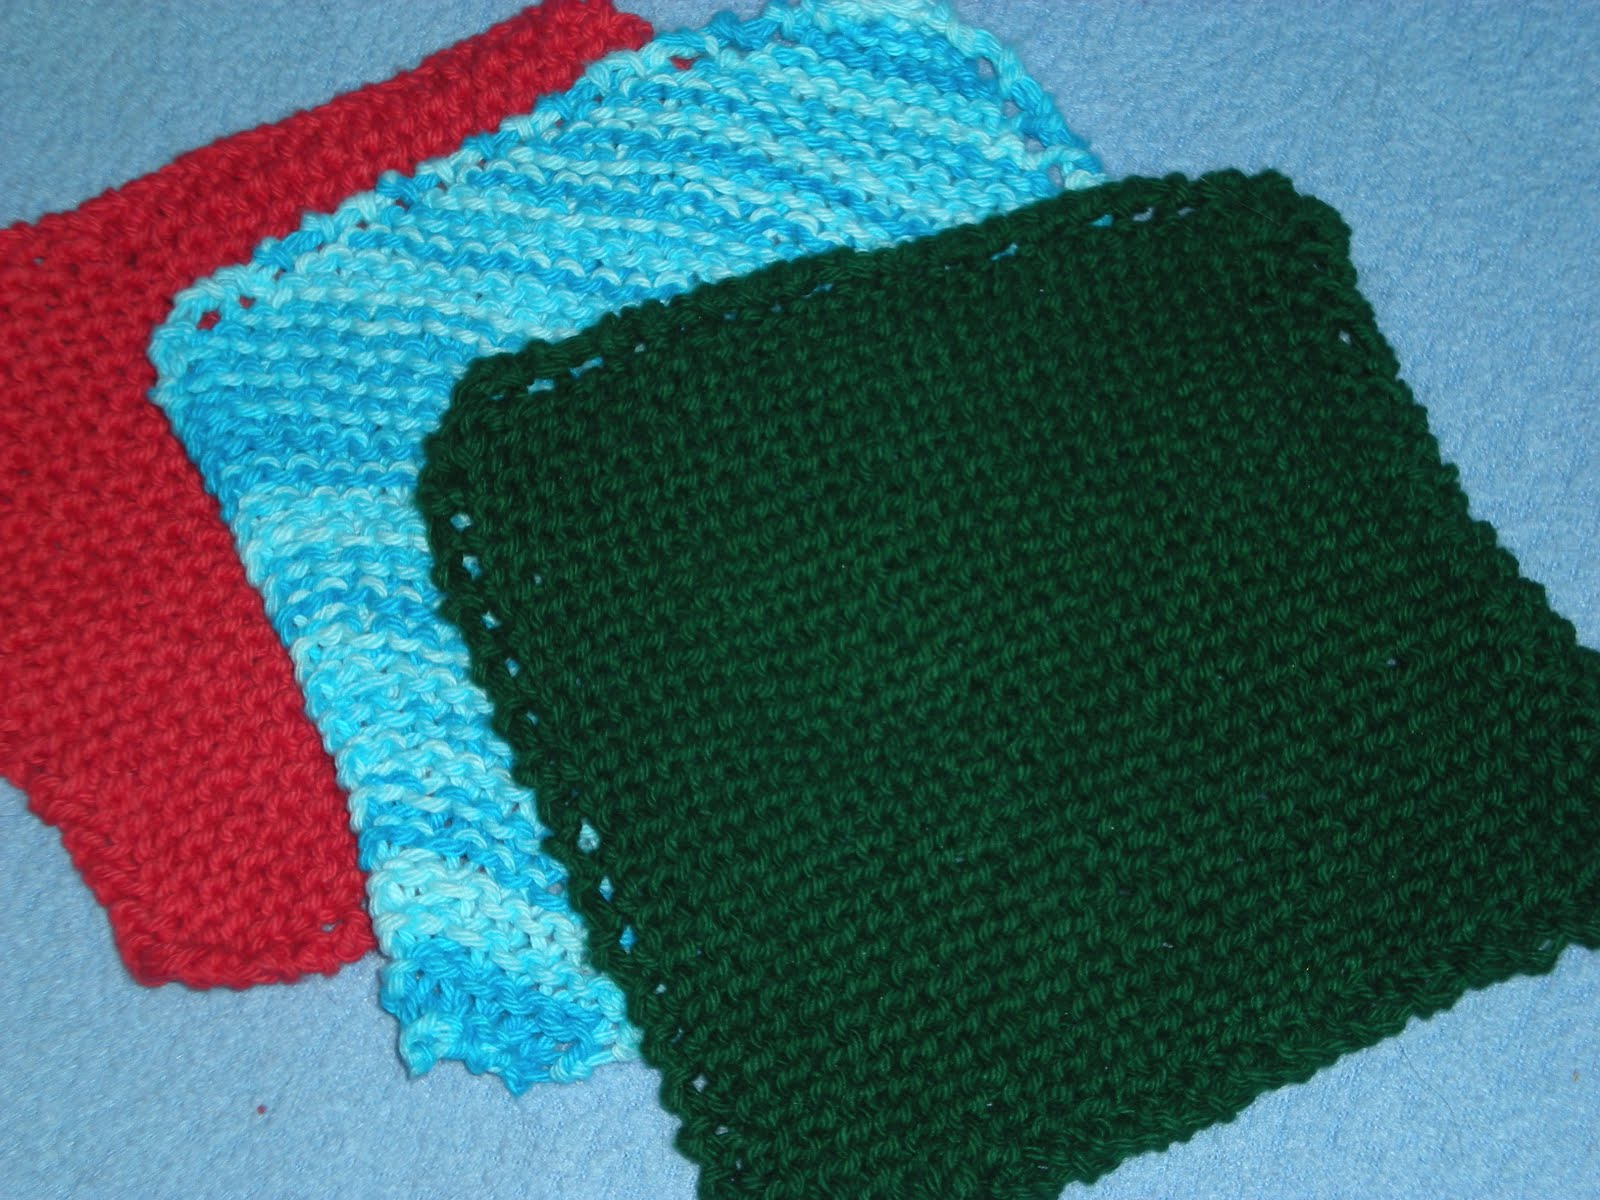 KNITTED PATTERNS FOR DISHCLOTHS – Browse Patterns